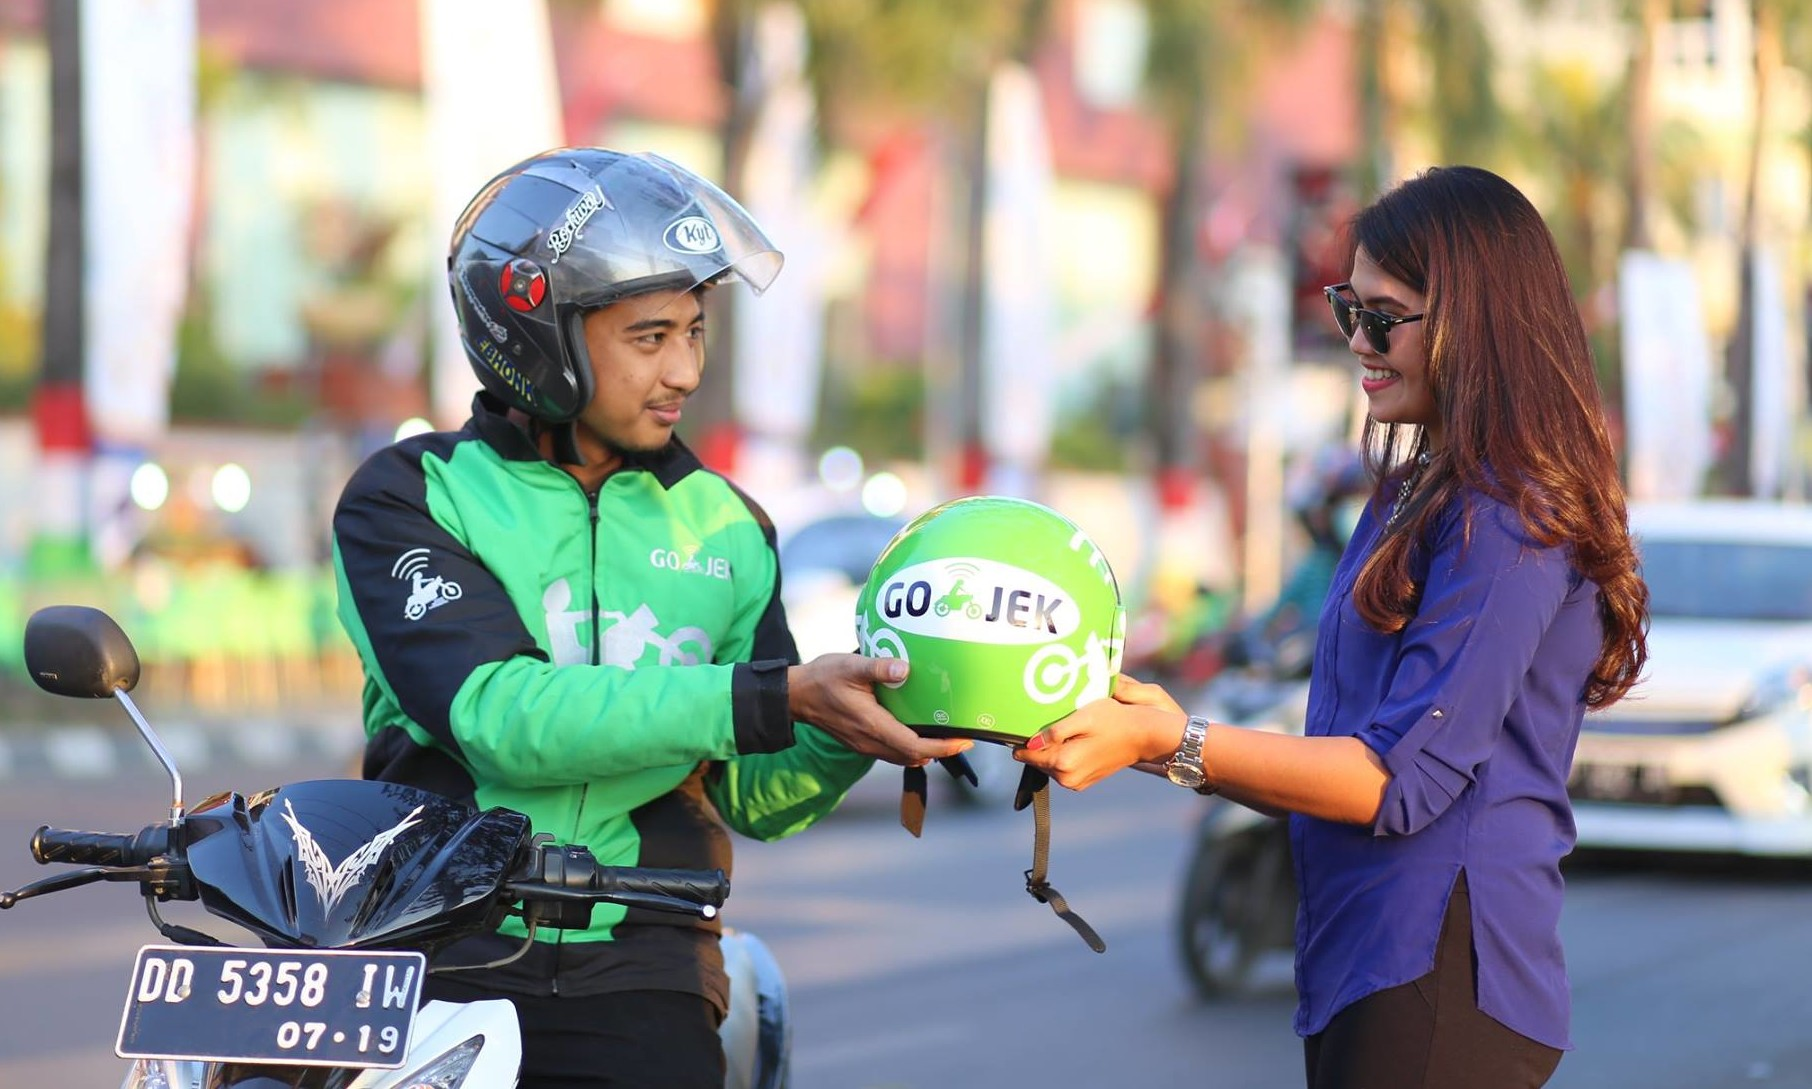 Indonesia's Go-Jek Secures US$550 Mln In New Funding